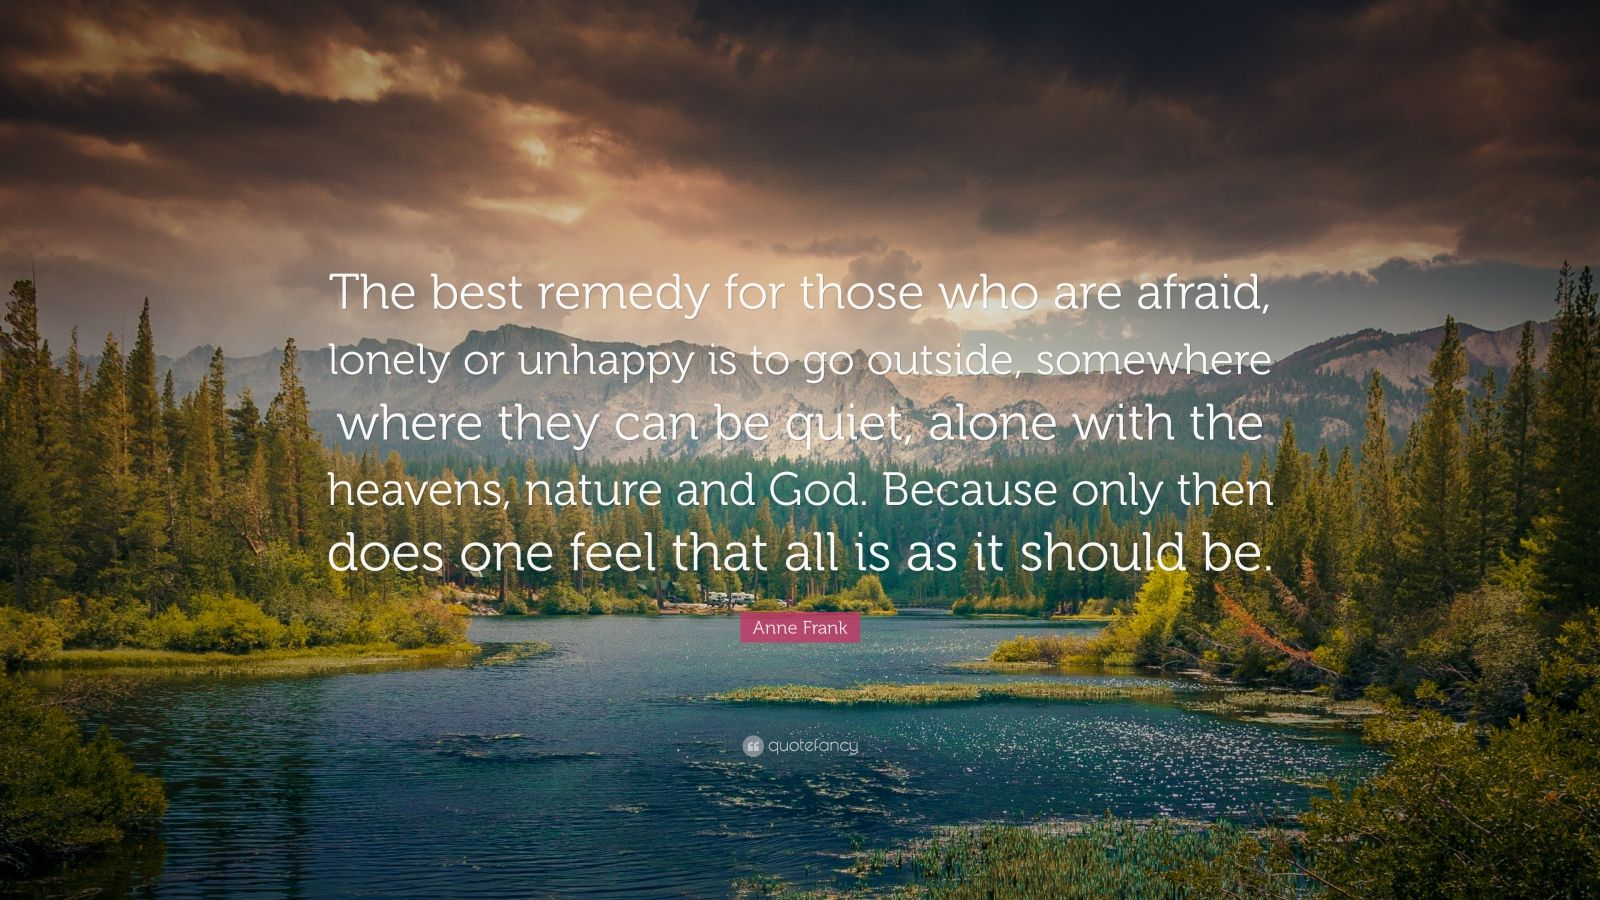 "Anne Frank Quote: ""The best remedy for those who are afraid, lonely or unhappy is to go outside, somewhere where they can be quiet, alone with the heavens, nature and God. Because only then does one feel that all is as it should be."""